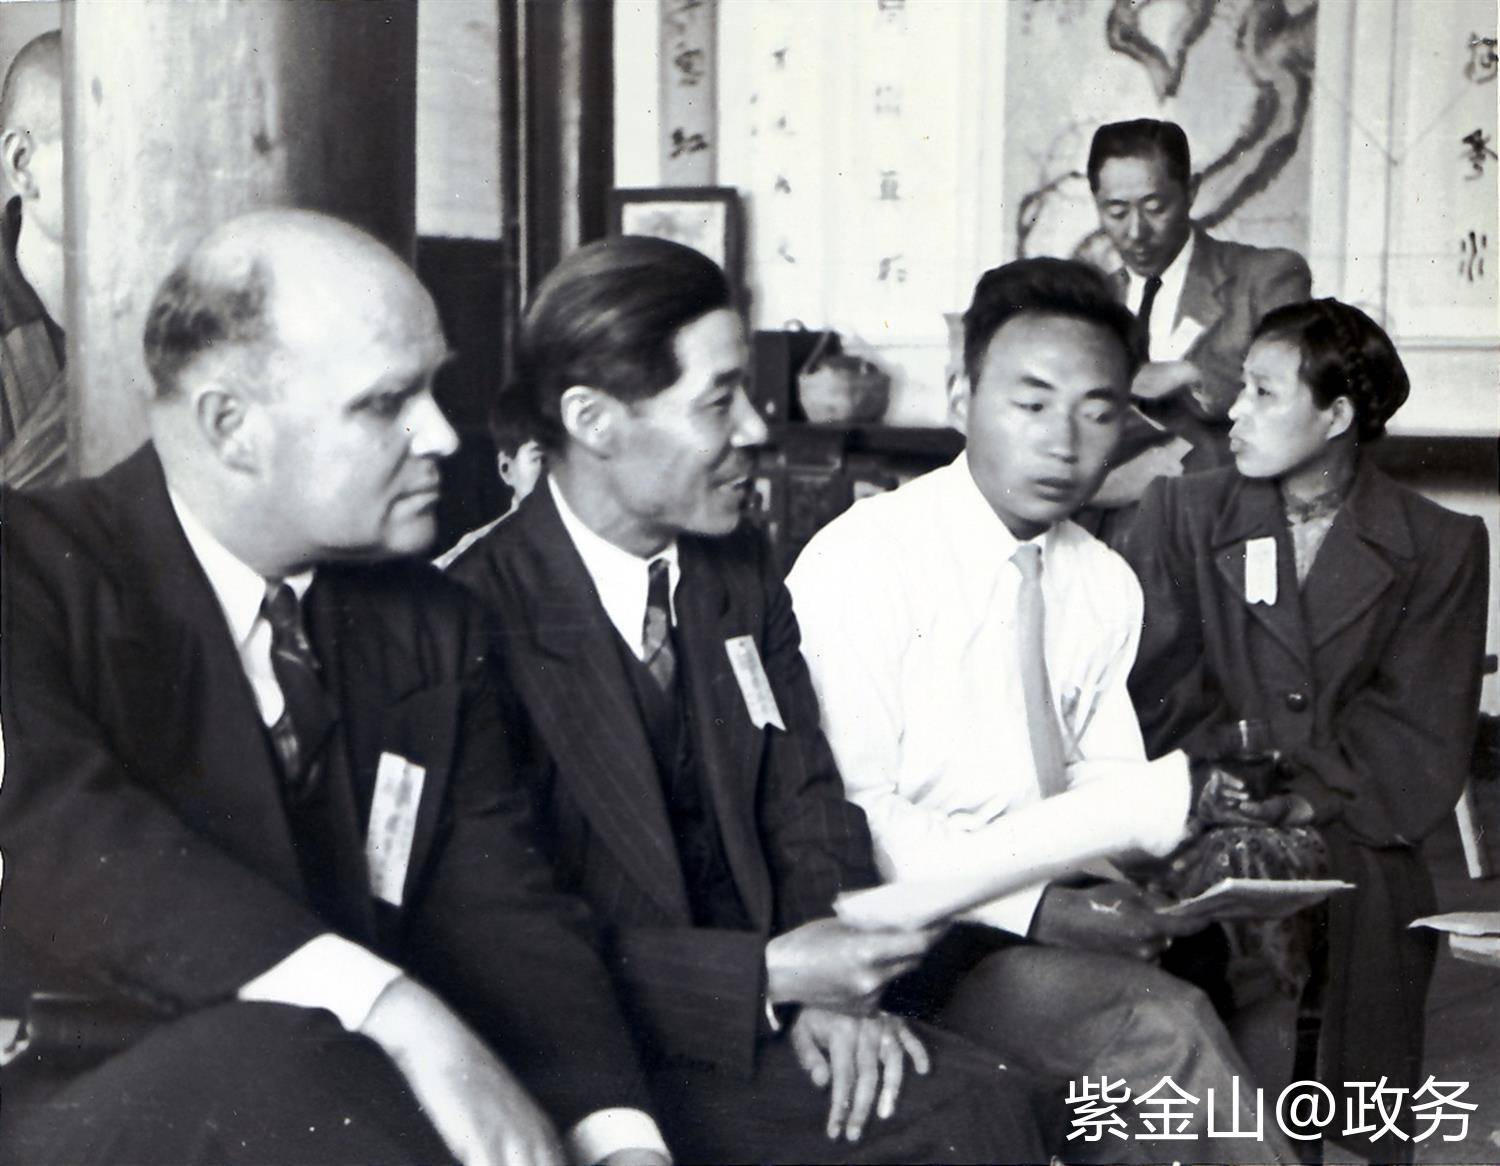 Alumni meeting 19492.jpg